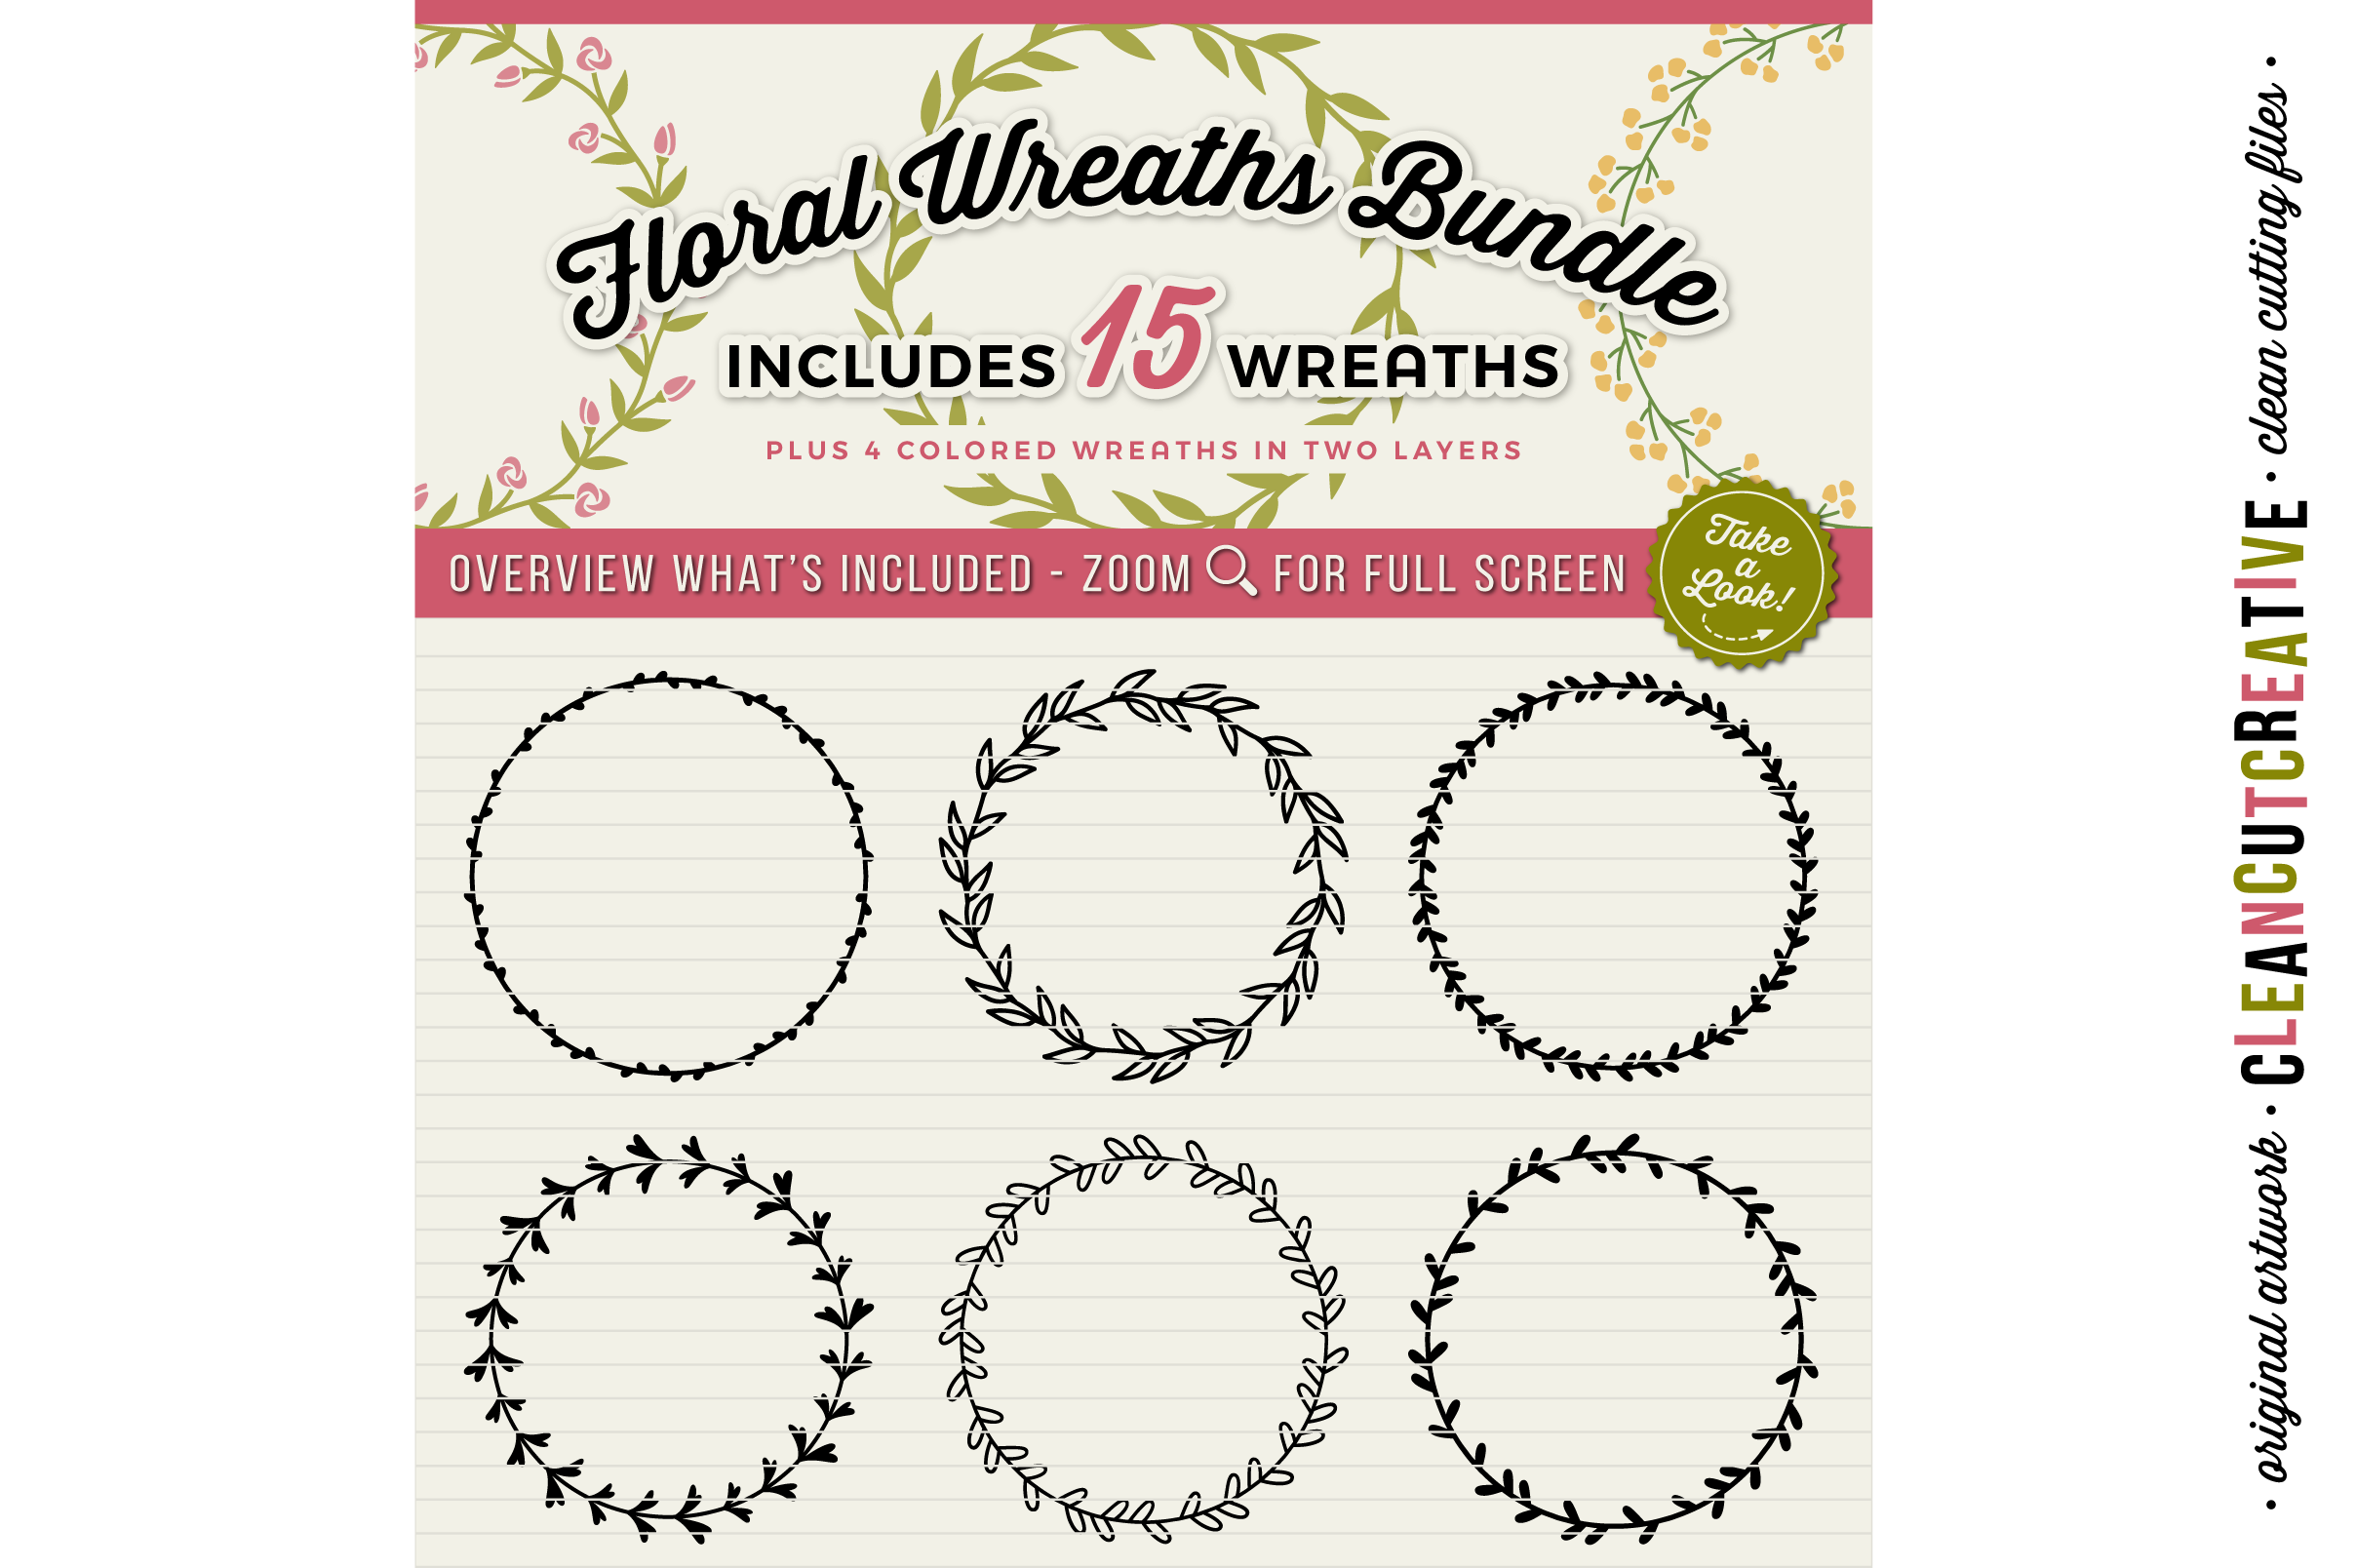 15 svg FLORAL WREATHS floral leaf circleframes - SVG DXF EPS PNG - for Cricut and Silhouette Cameo - clean cutting digital files example image 2